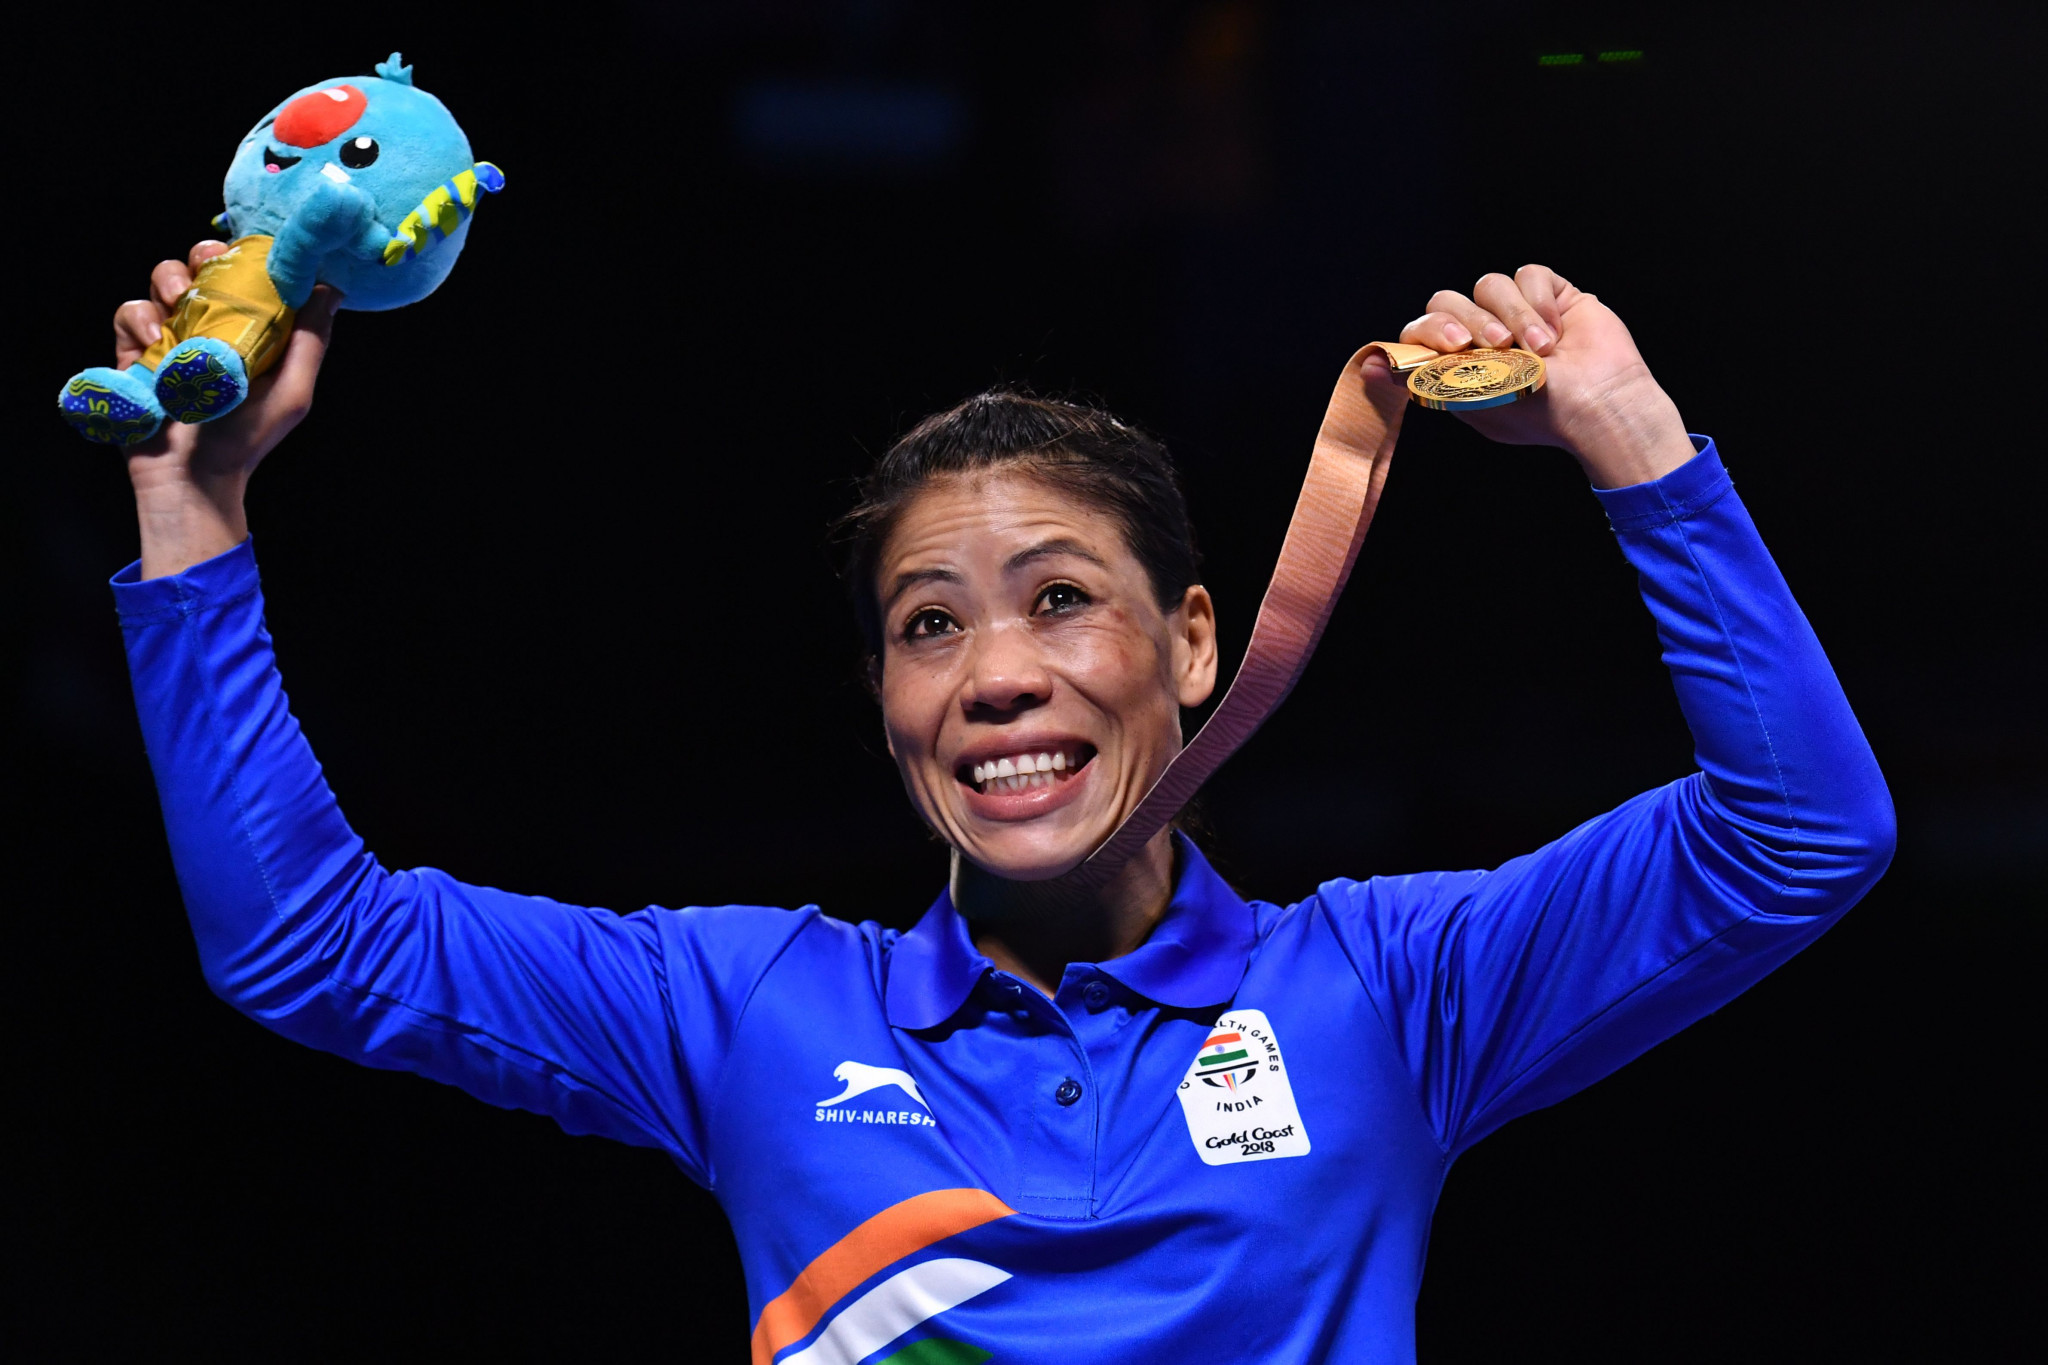 Indian boxing star Kom claims maiden Commonwealth Games gold medal at Gold Coast 2018 on successful day for England